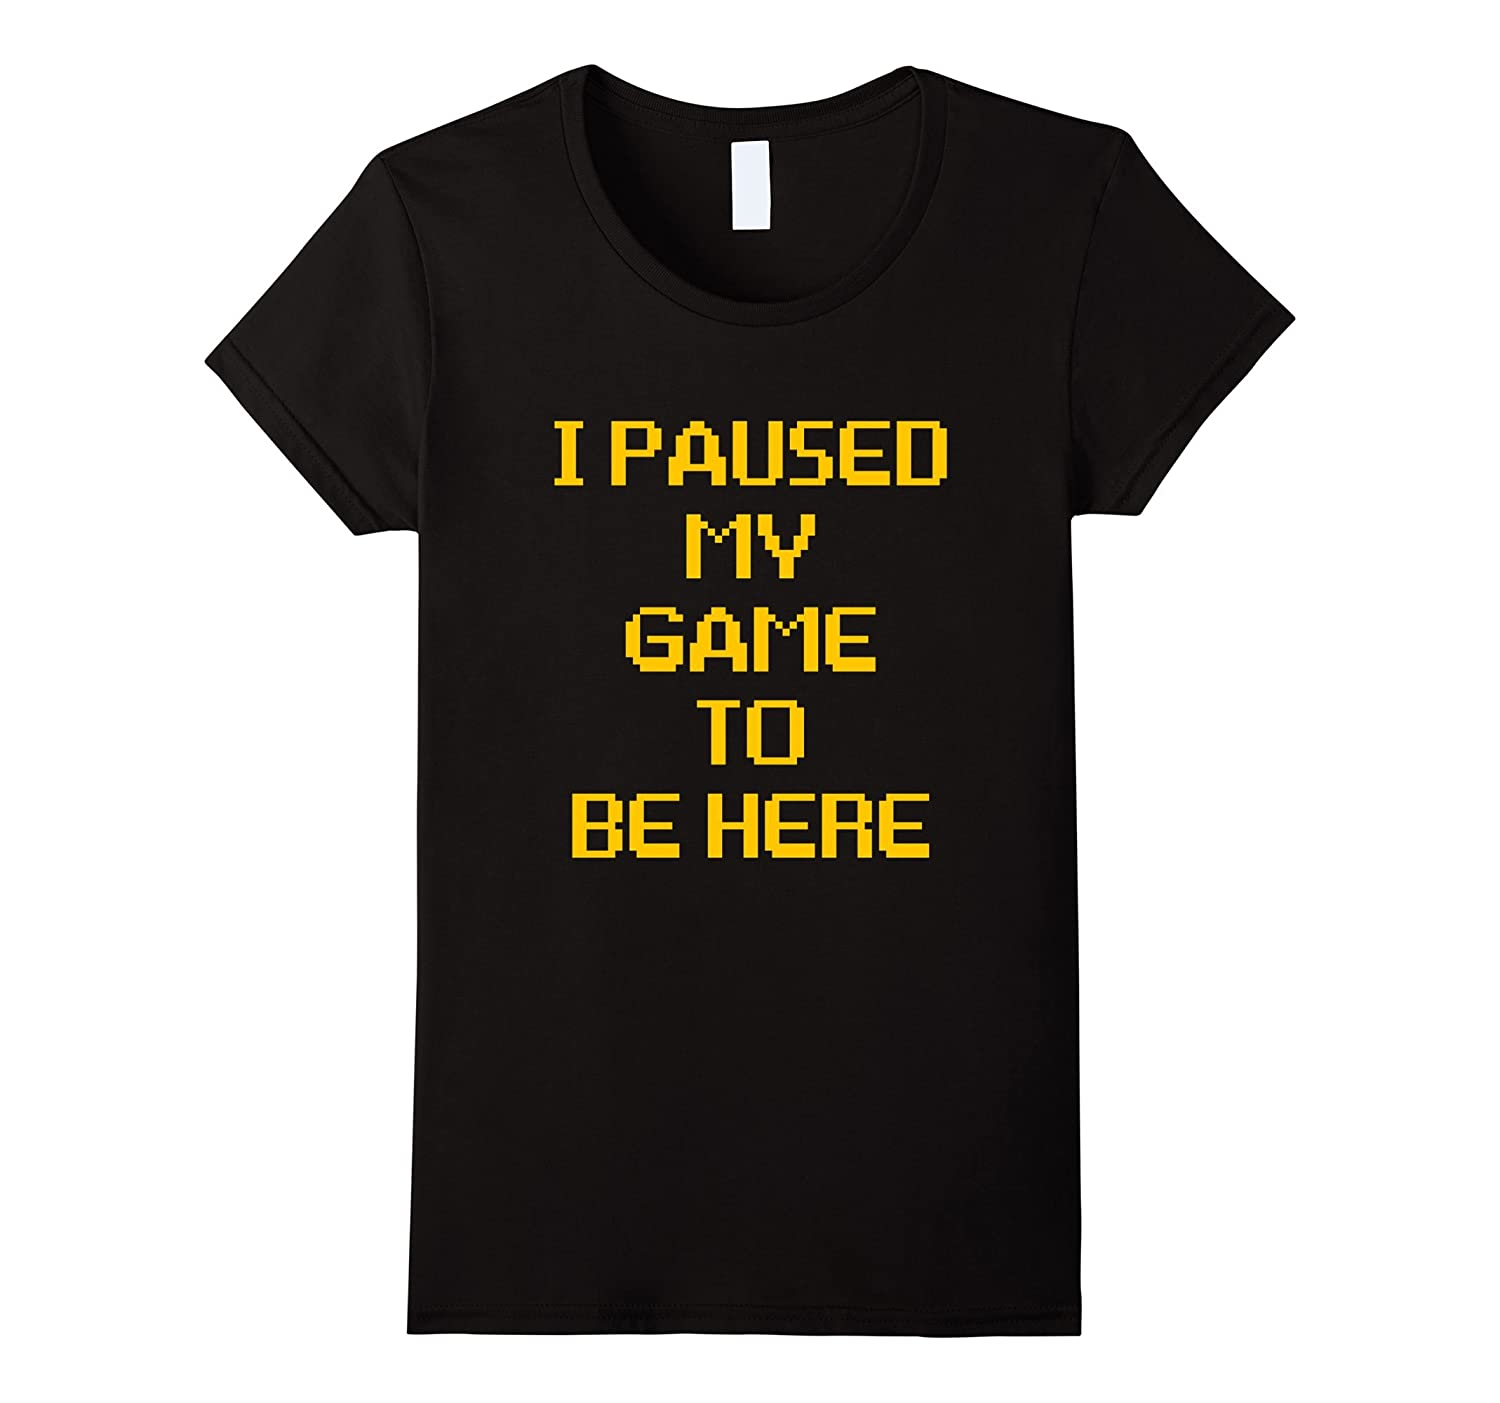 Paused Funny Gaming T Shirt Large-Tovacu